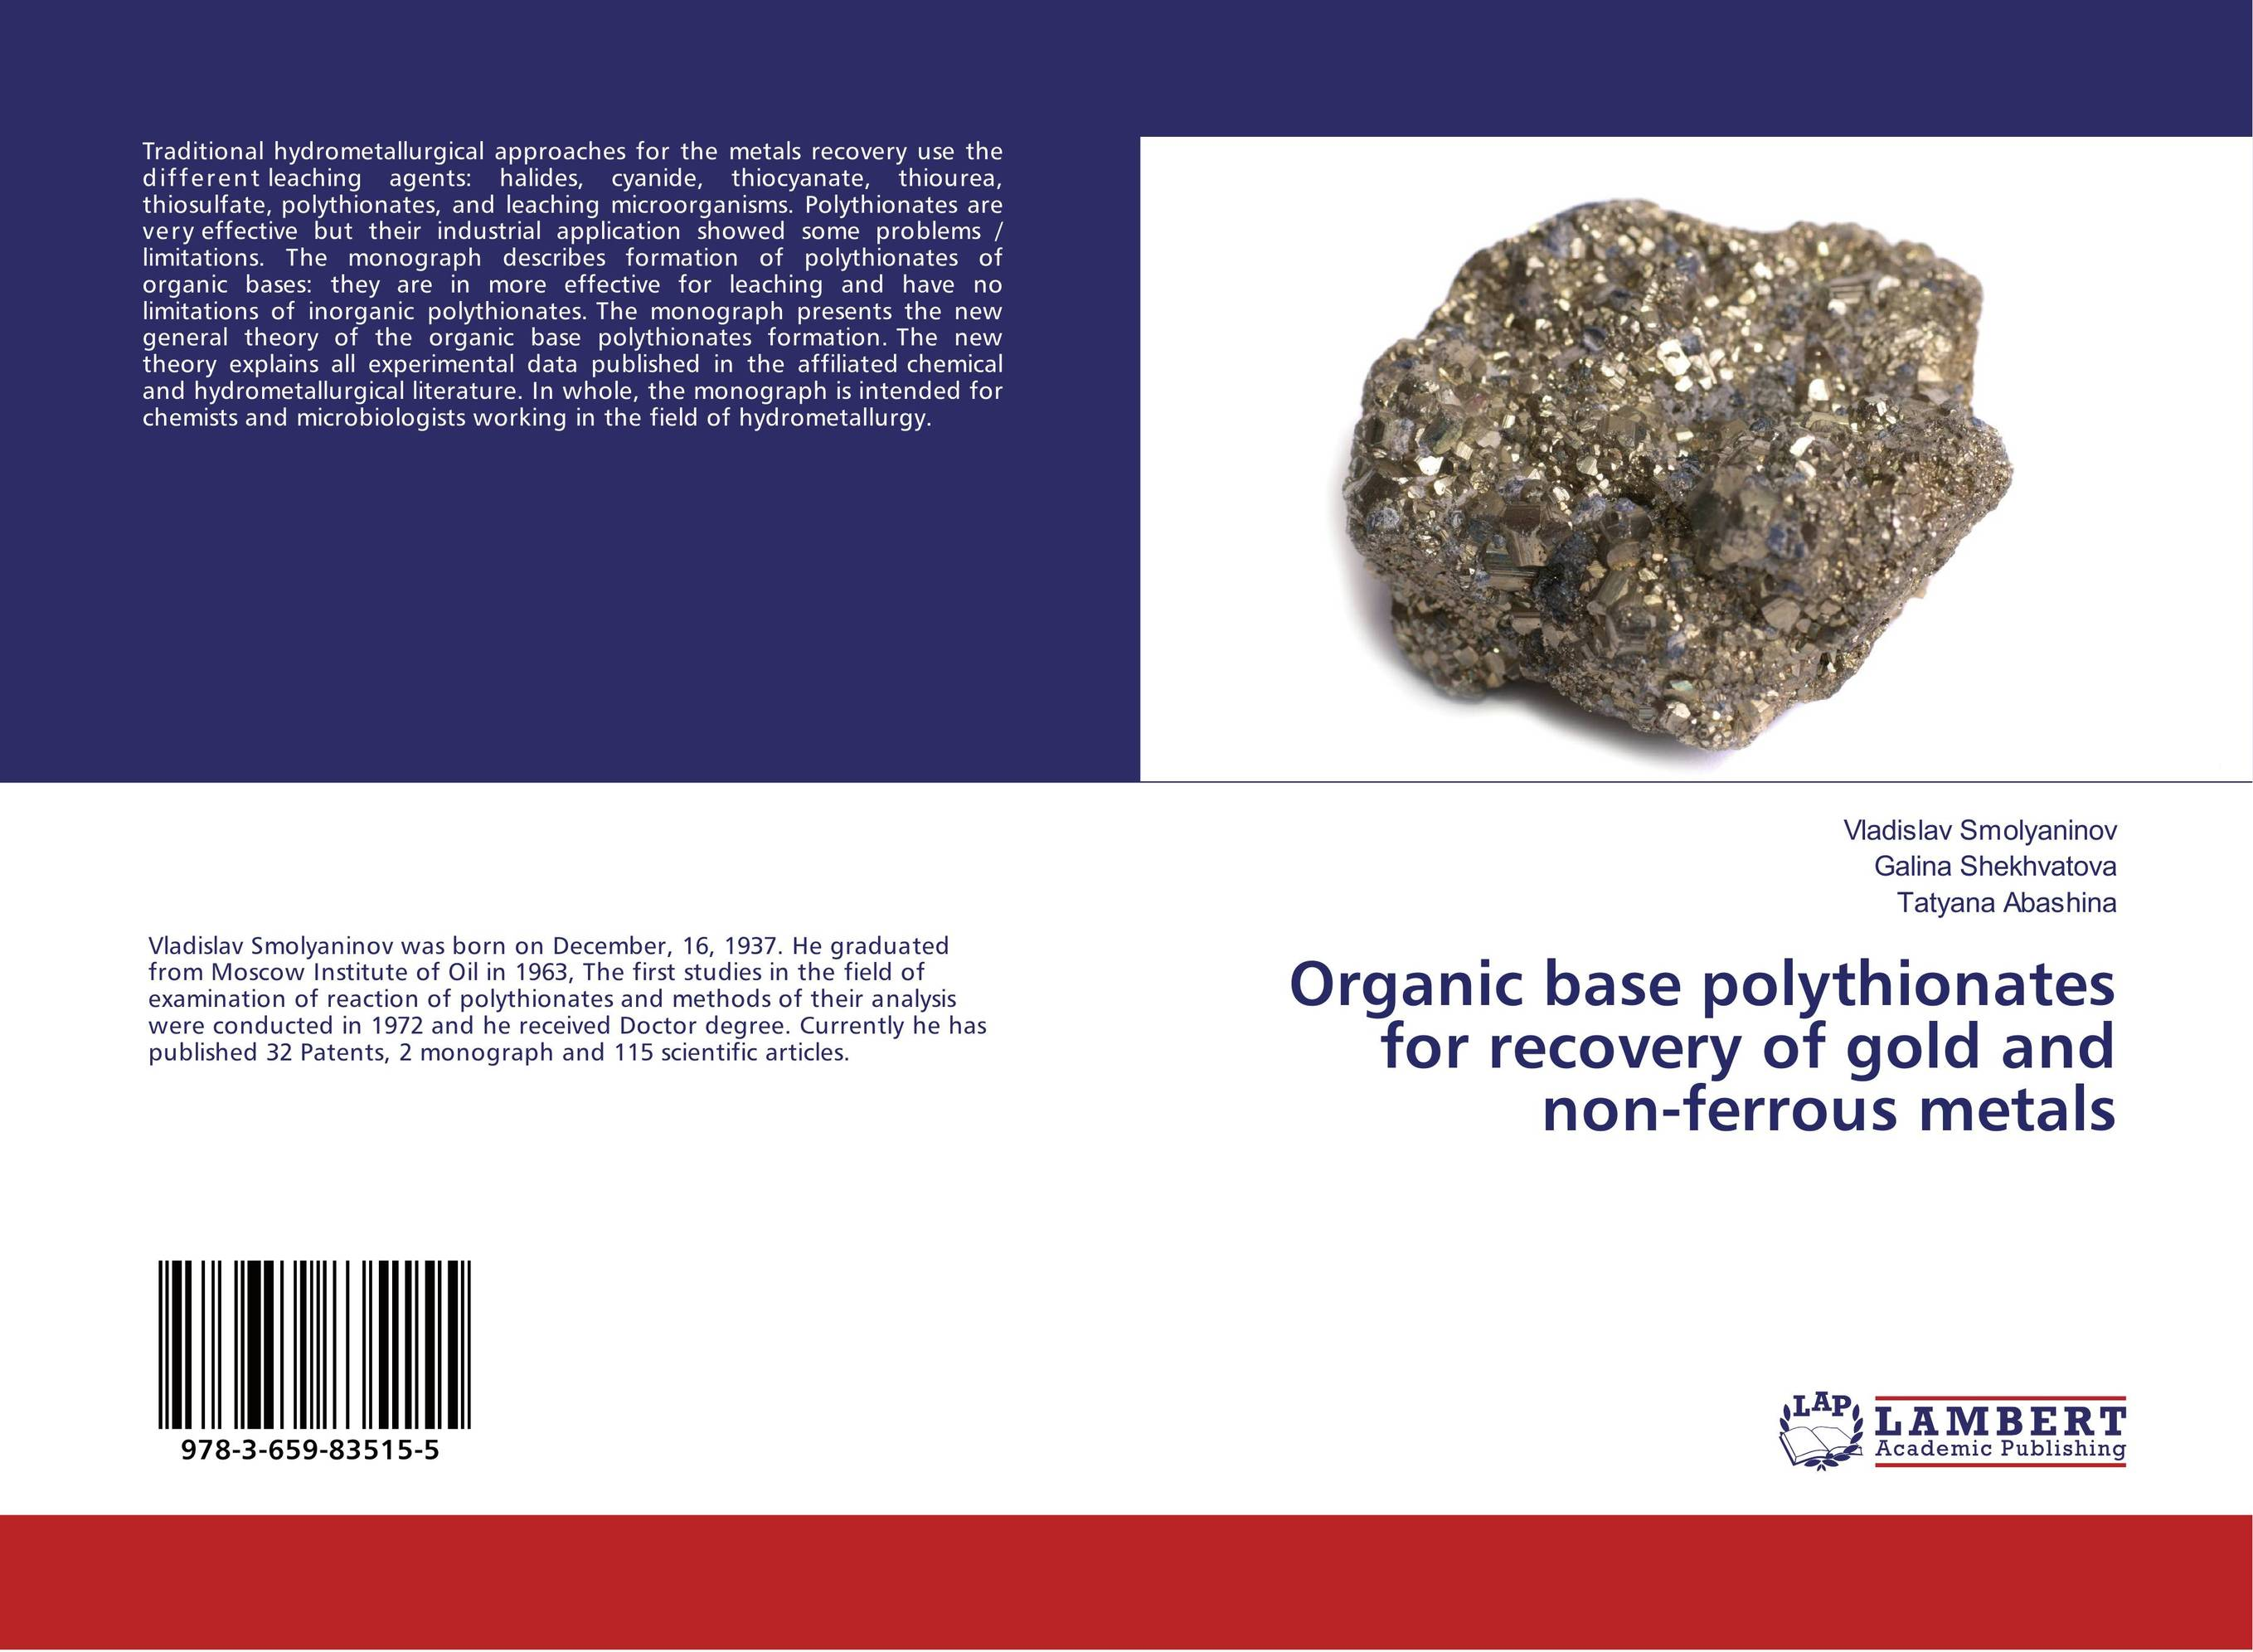 Organic base polythionates for recovery of gold and non-ferrous metals recovery of metals from sludges and wastewaters